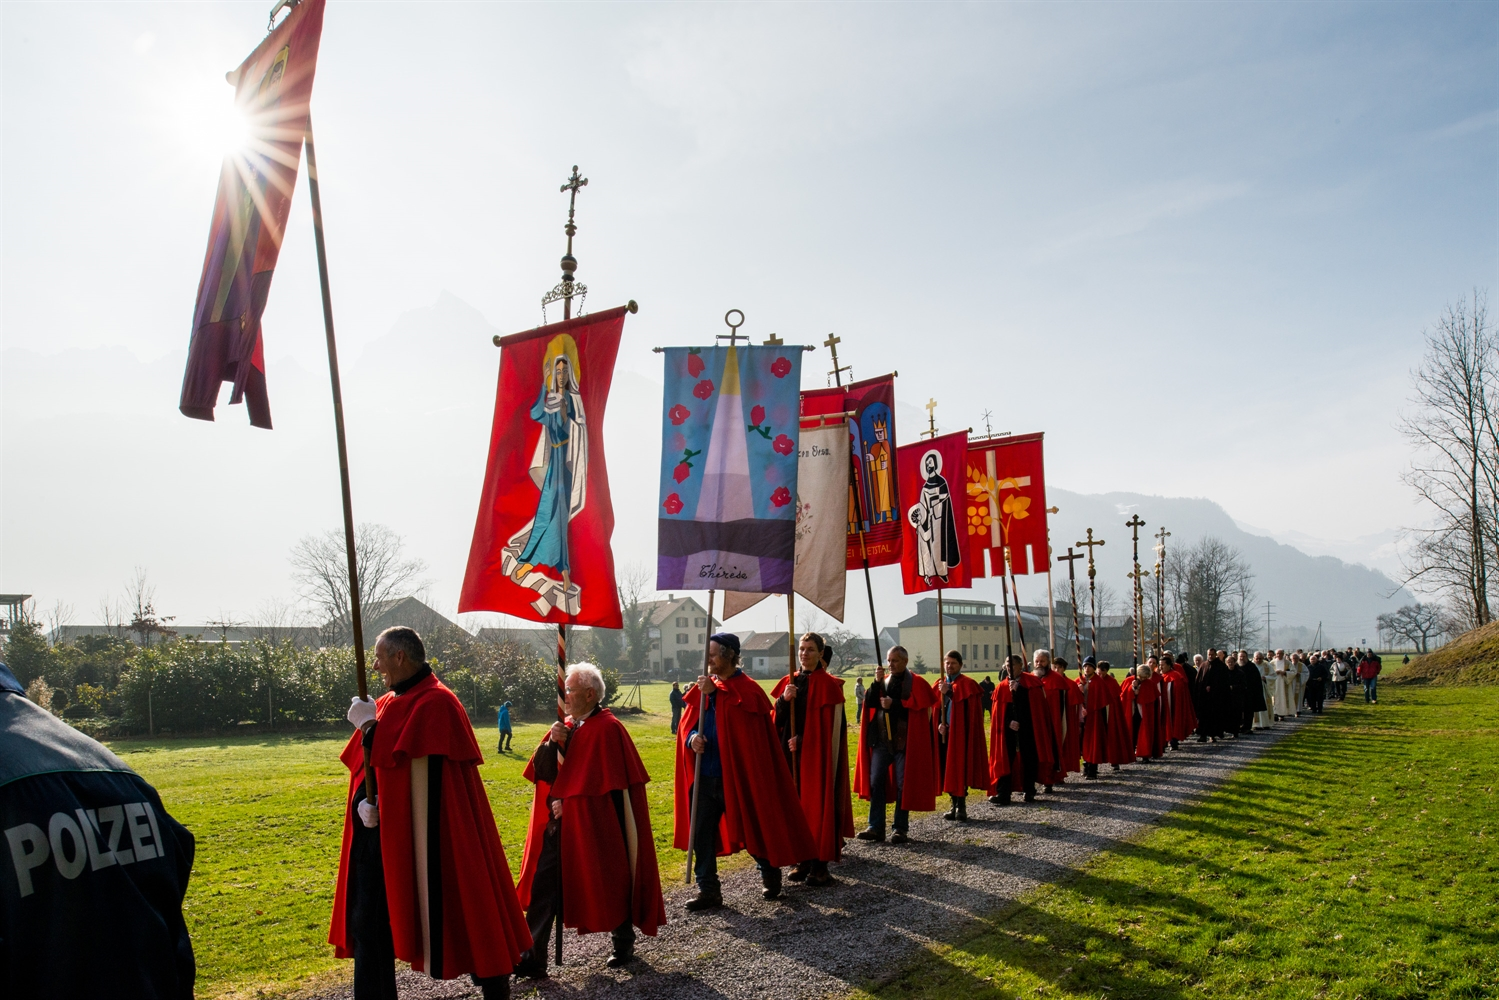 Each year on the first Thursday in April, Näfelser Fahrt, a pilgrimage to the site of the Battle of Näfels is held.